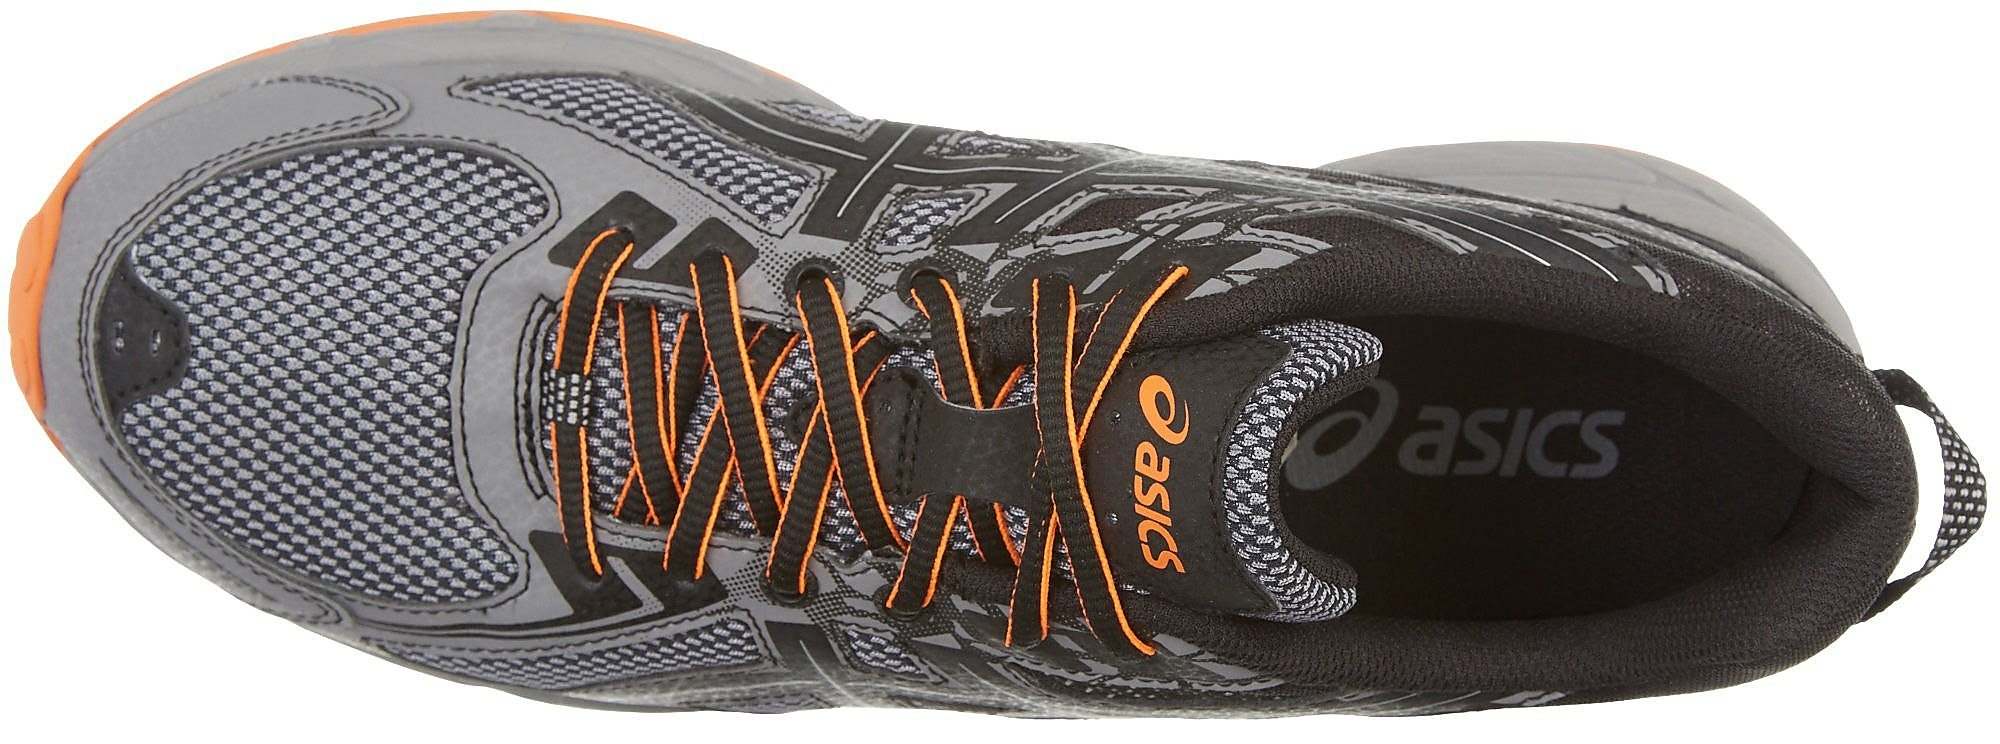 Asics-Mens-Gel-Venture-6-Athletic-Shoes thumbnail 11